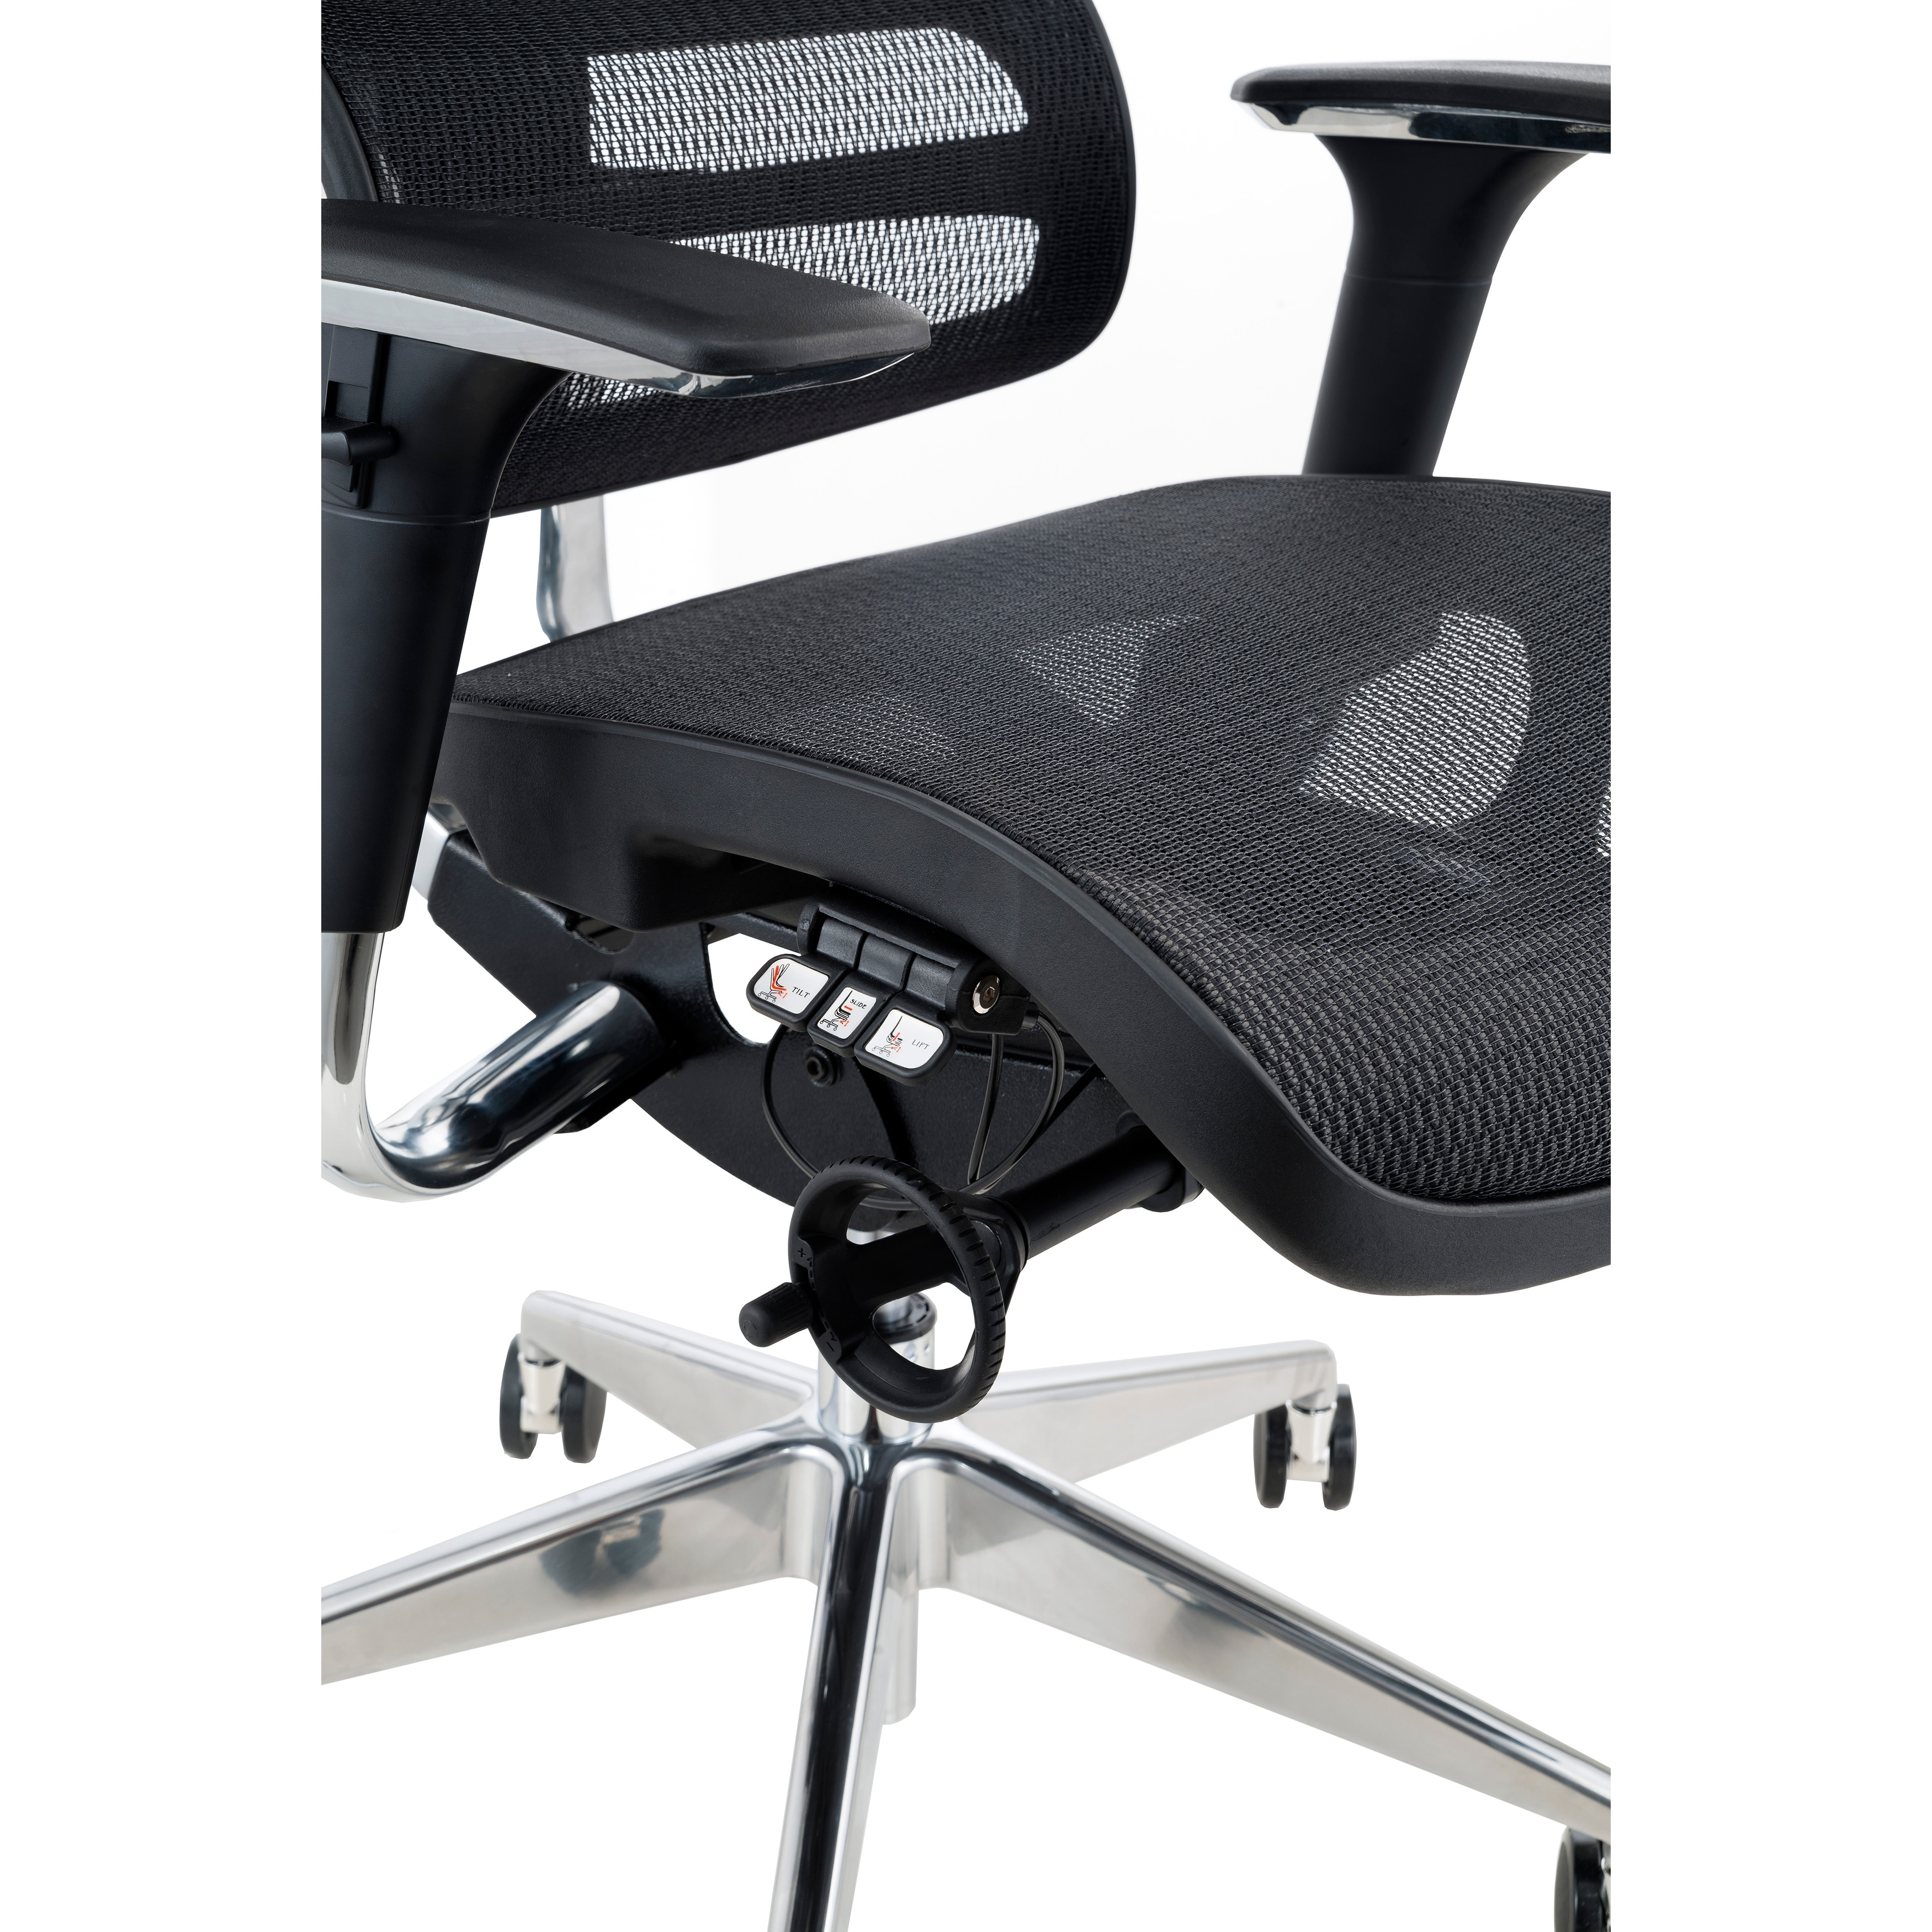 am shop sg office sale aircentric on airknit items chairs chair product category ergonomic photo black